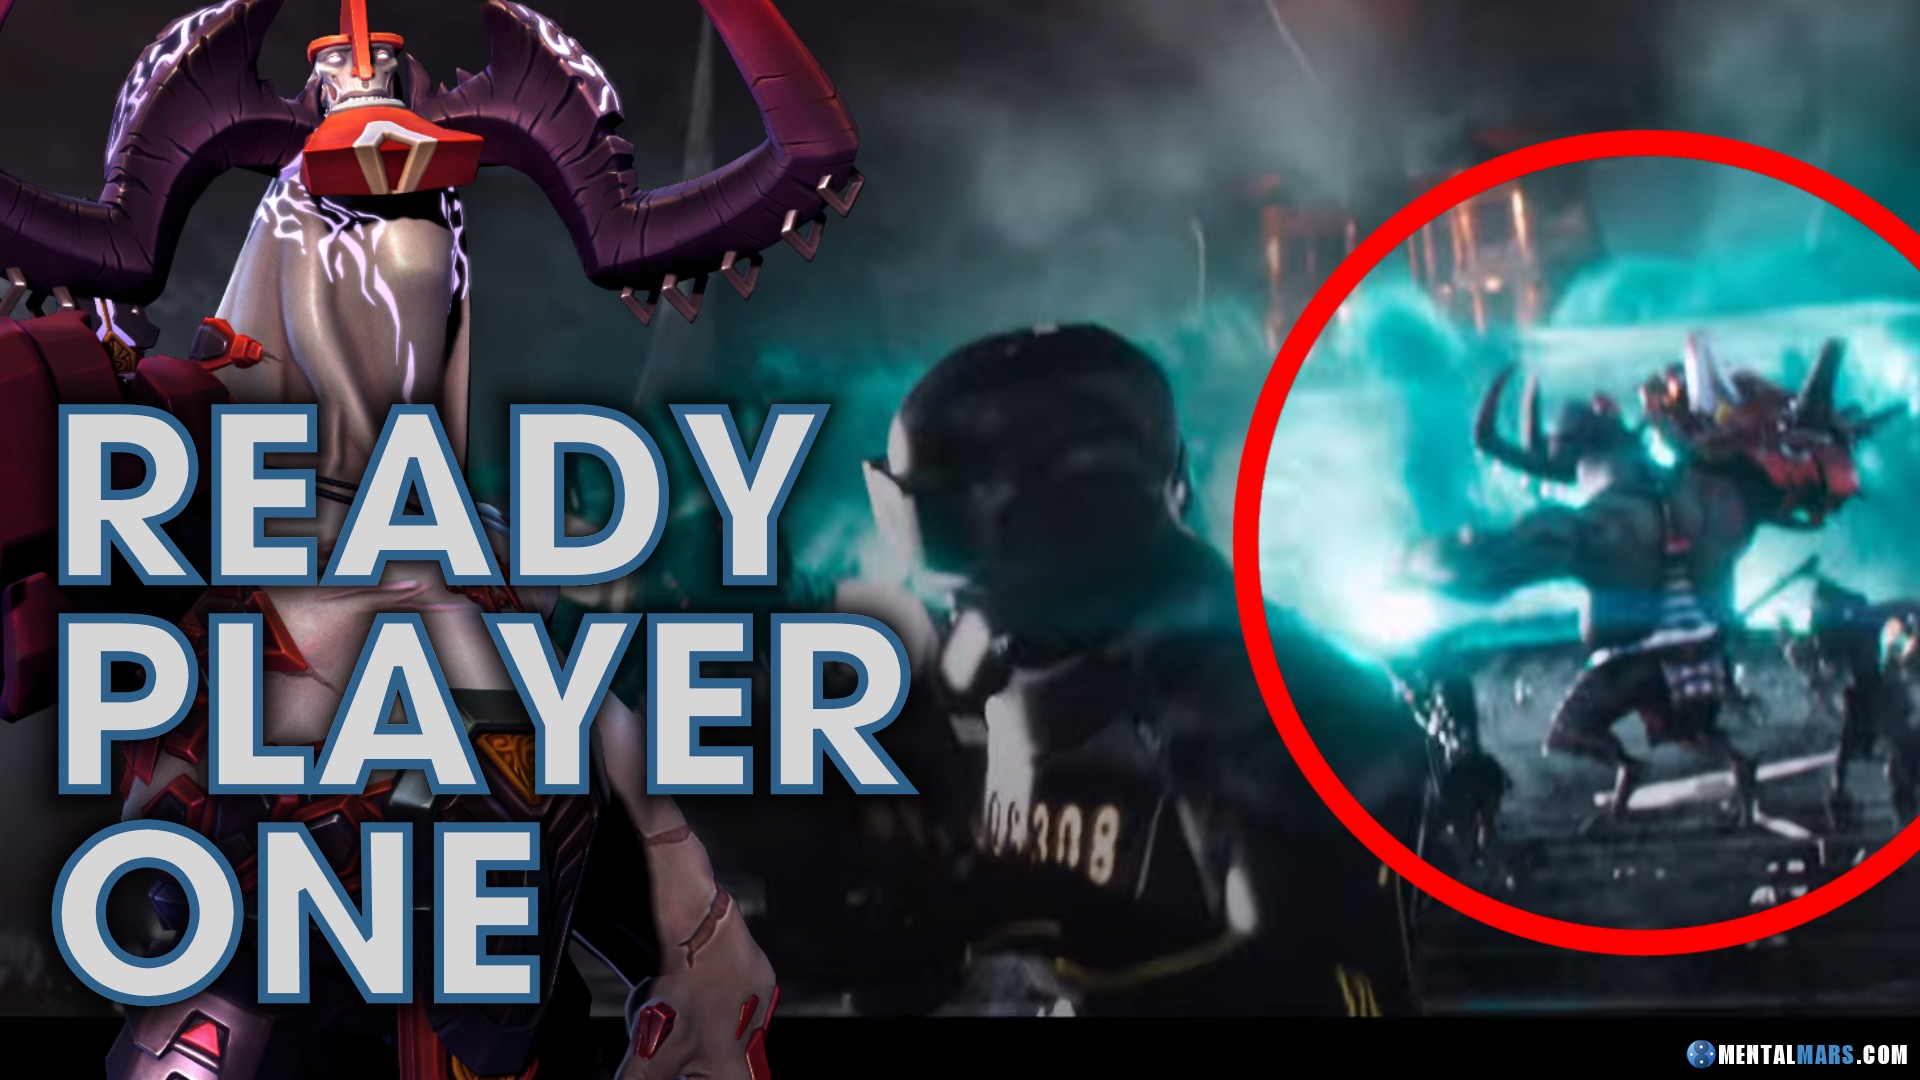 More Battleborn Heroes In New Ready Player One-6322